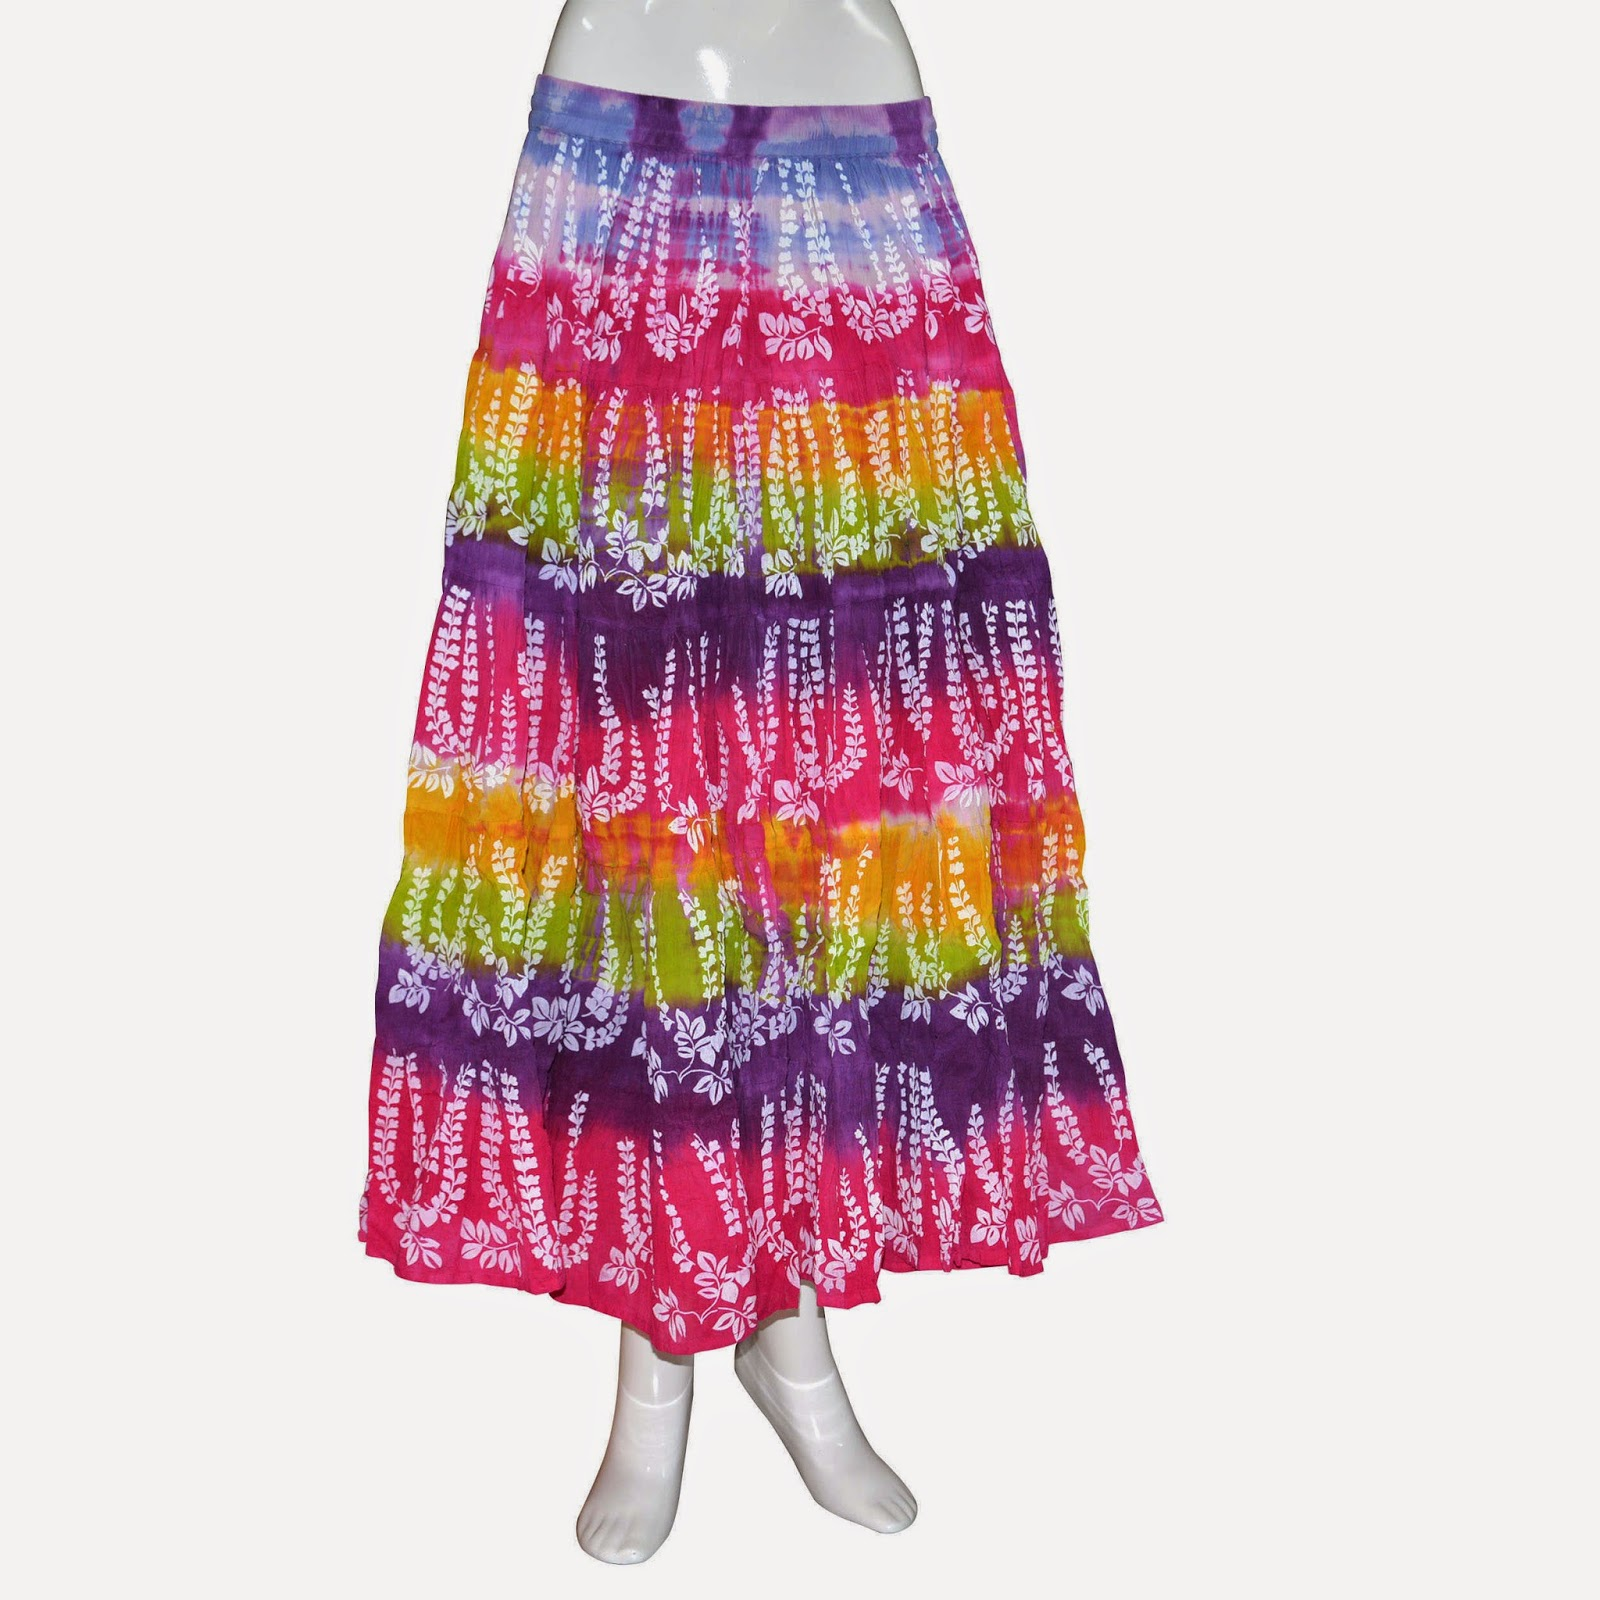 Handmade Cotton Lehariya Print, Elasticated Long String Skirt from India